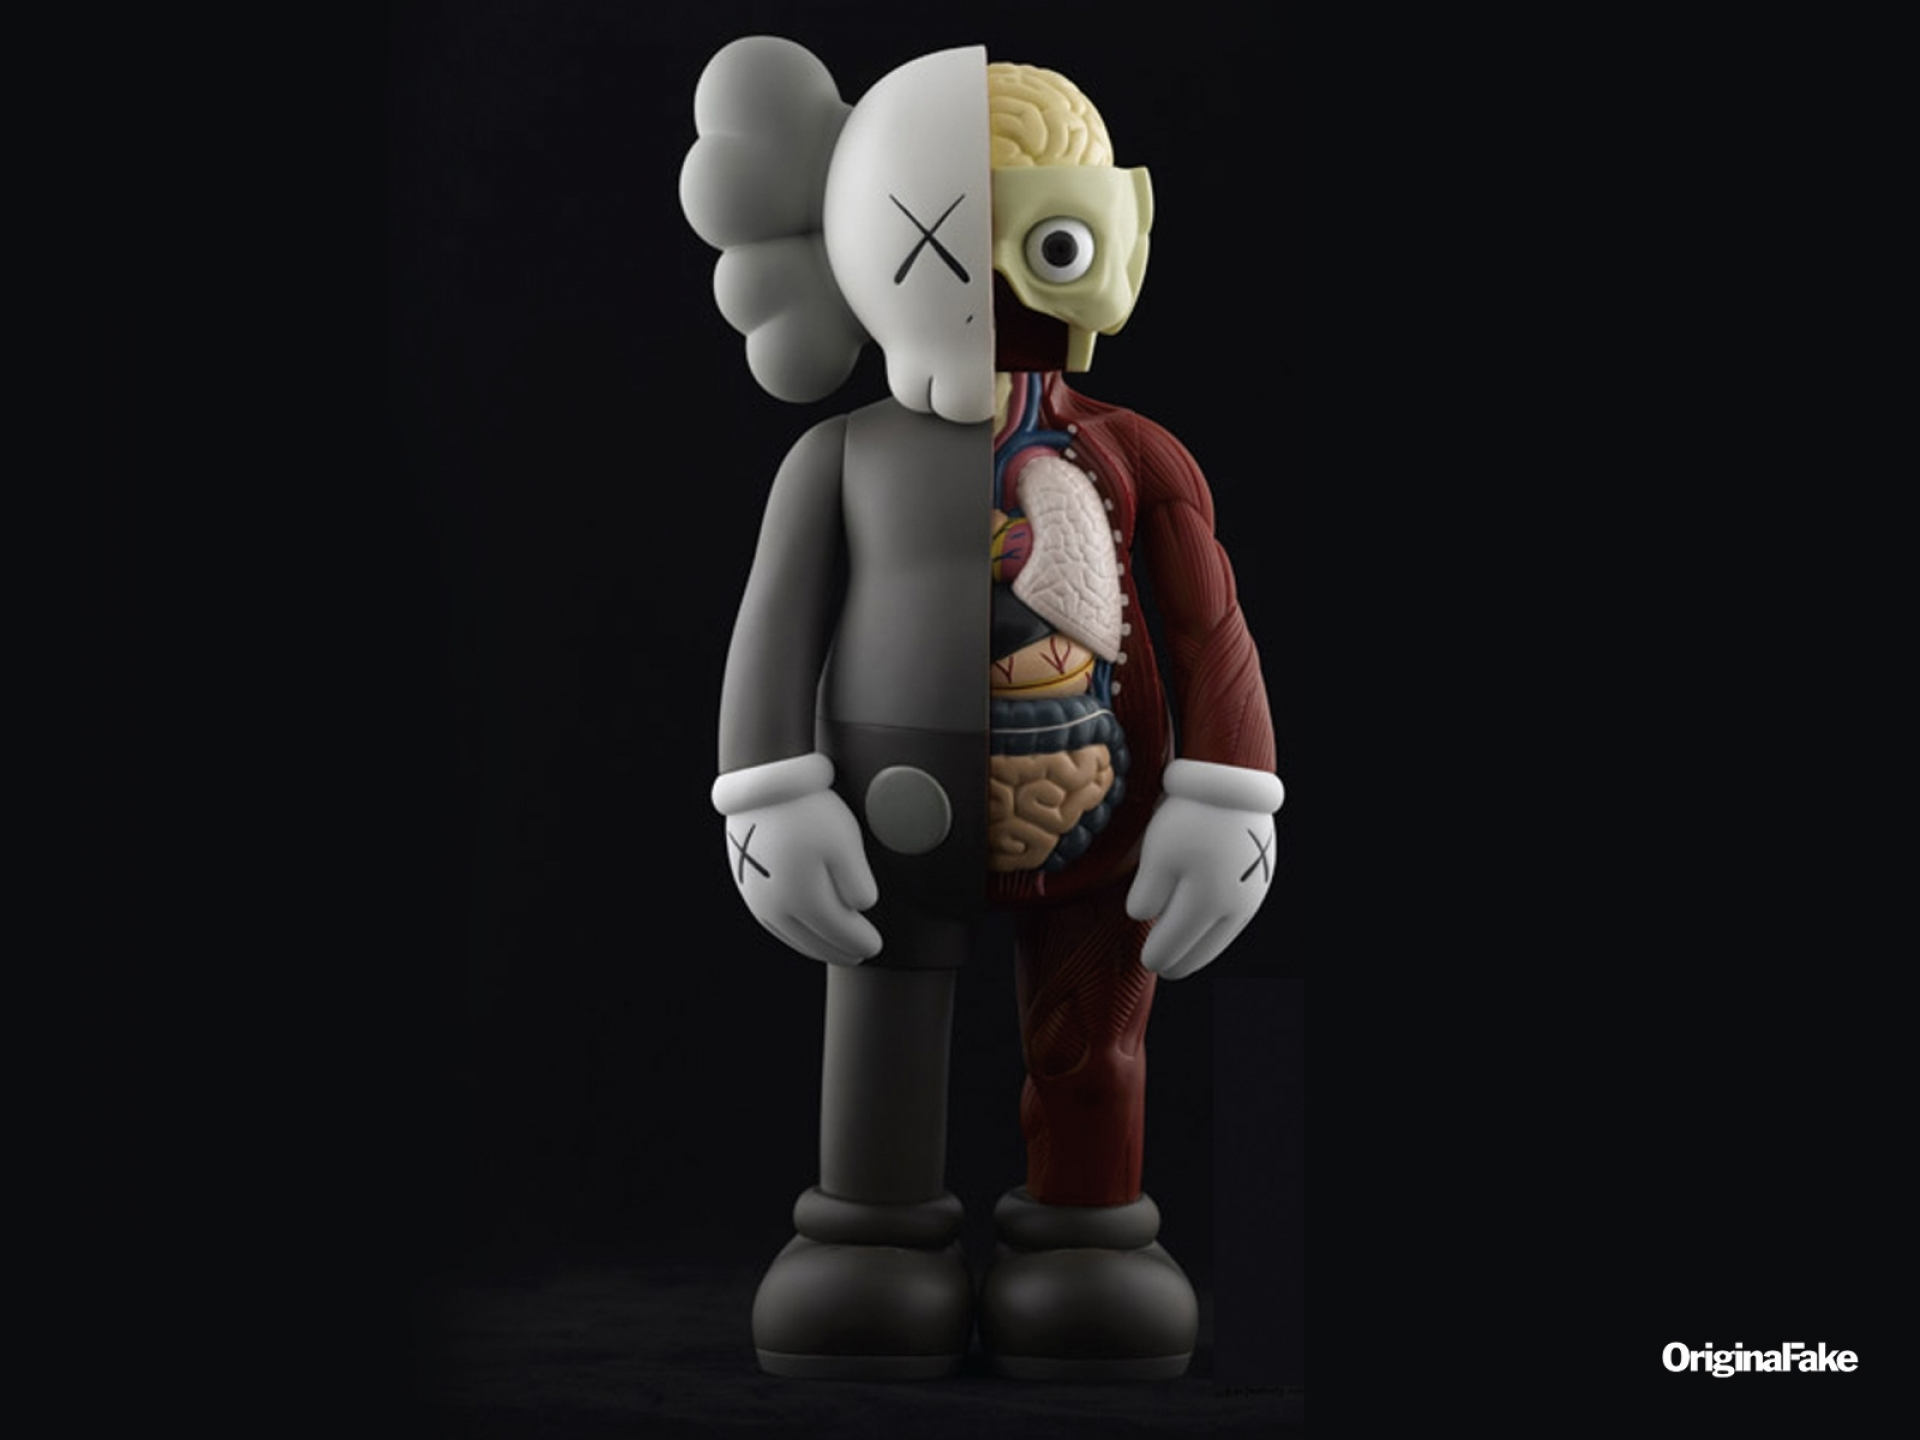 focus 1600x1200 kaws 1600x1200 wallpaper Art HD Wallpaper download 1920x1440